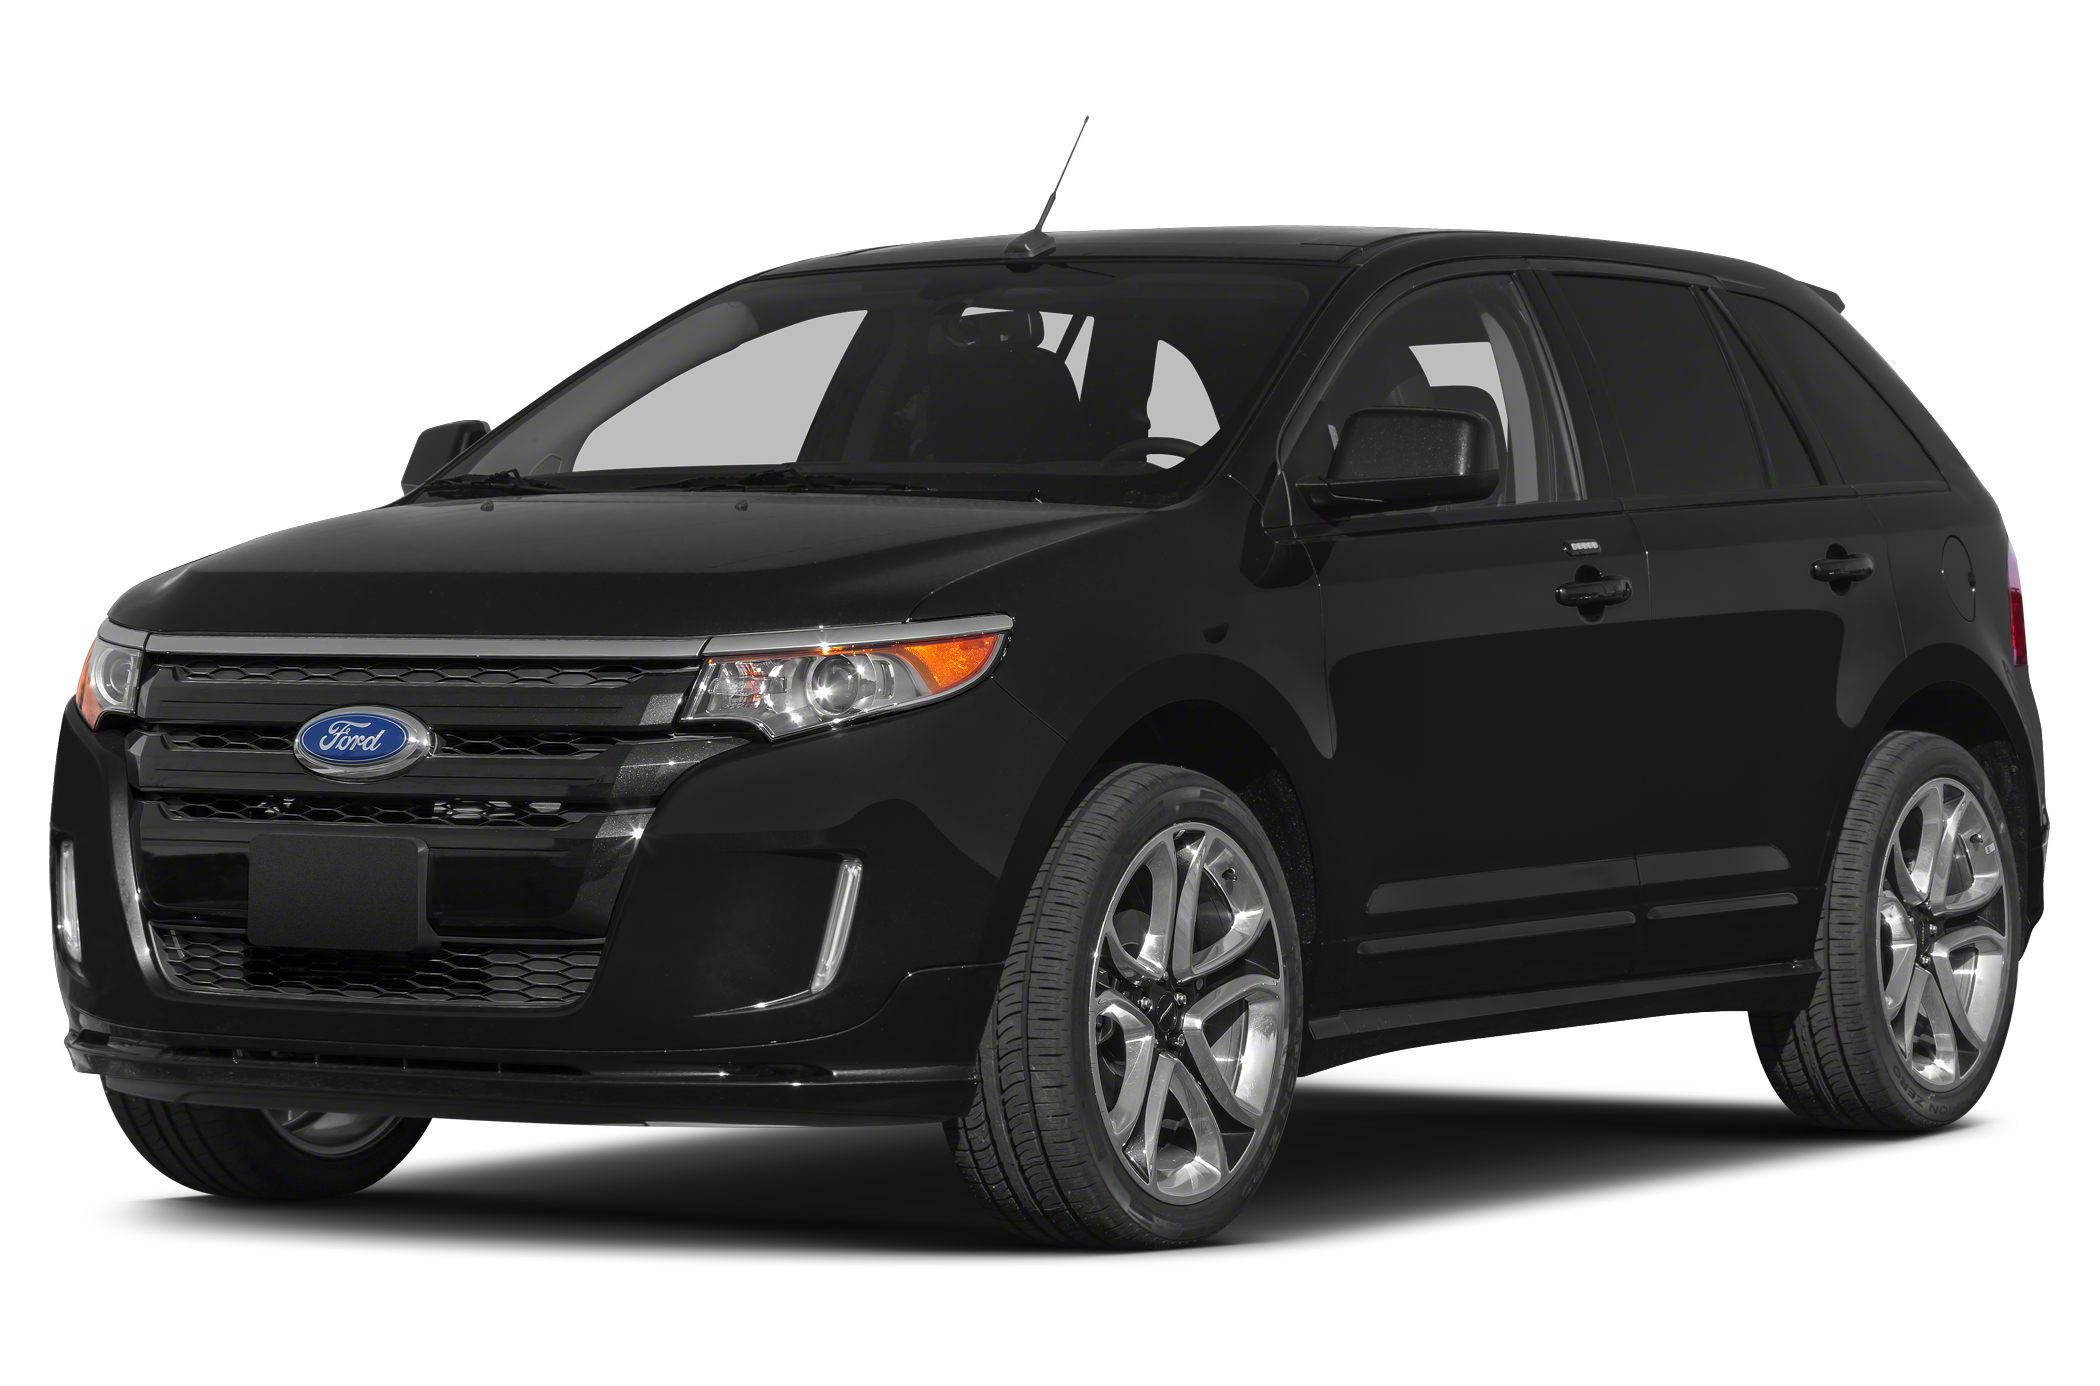 2014 Ford Edge Sport SUV for sale in Bartlesville for $42,655 with 10 miles.